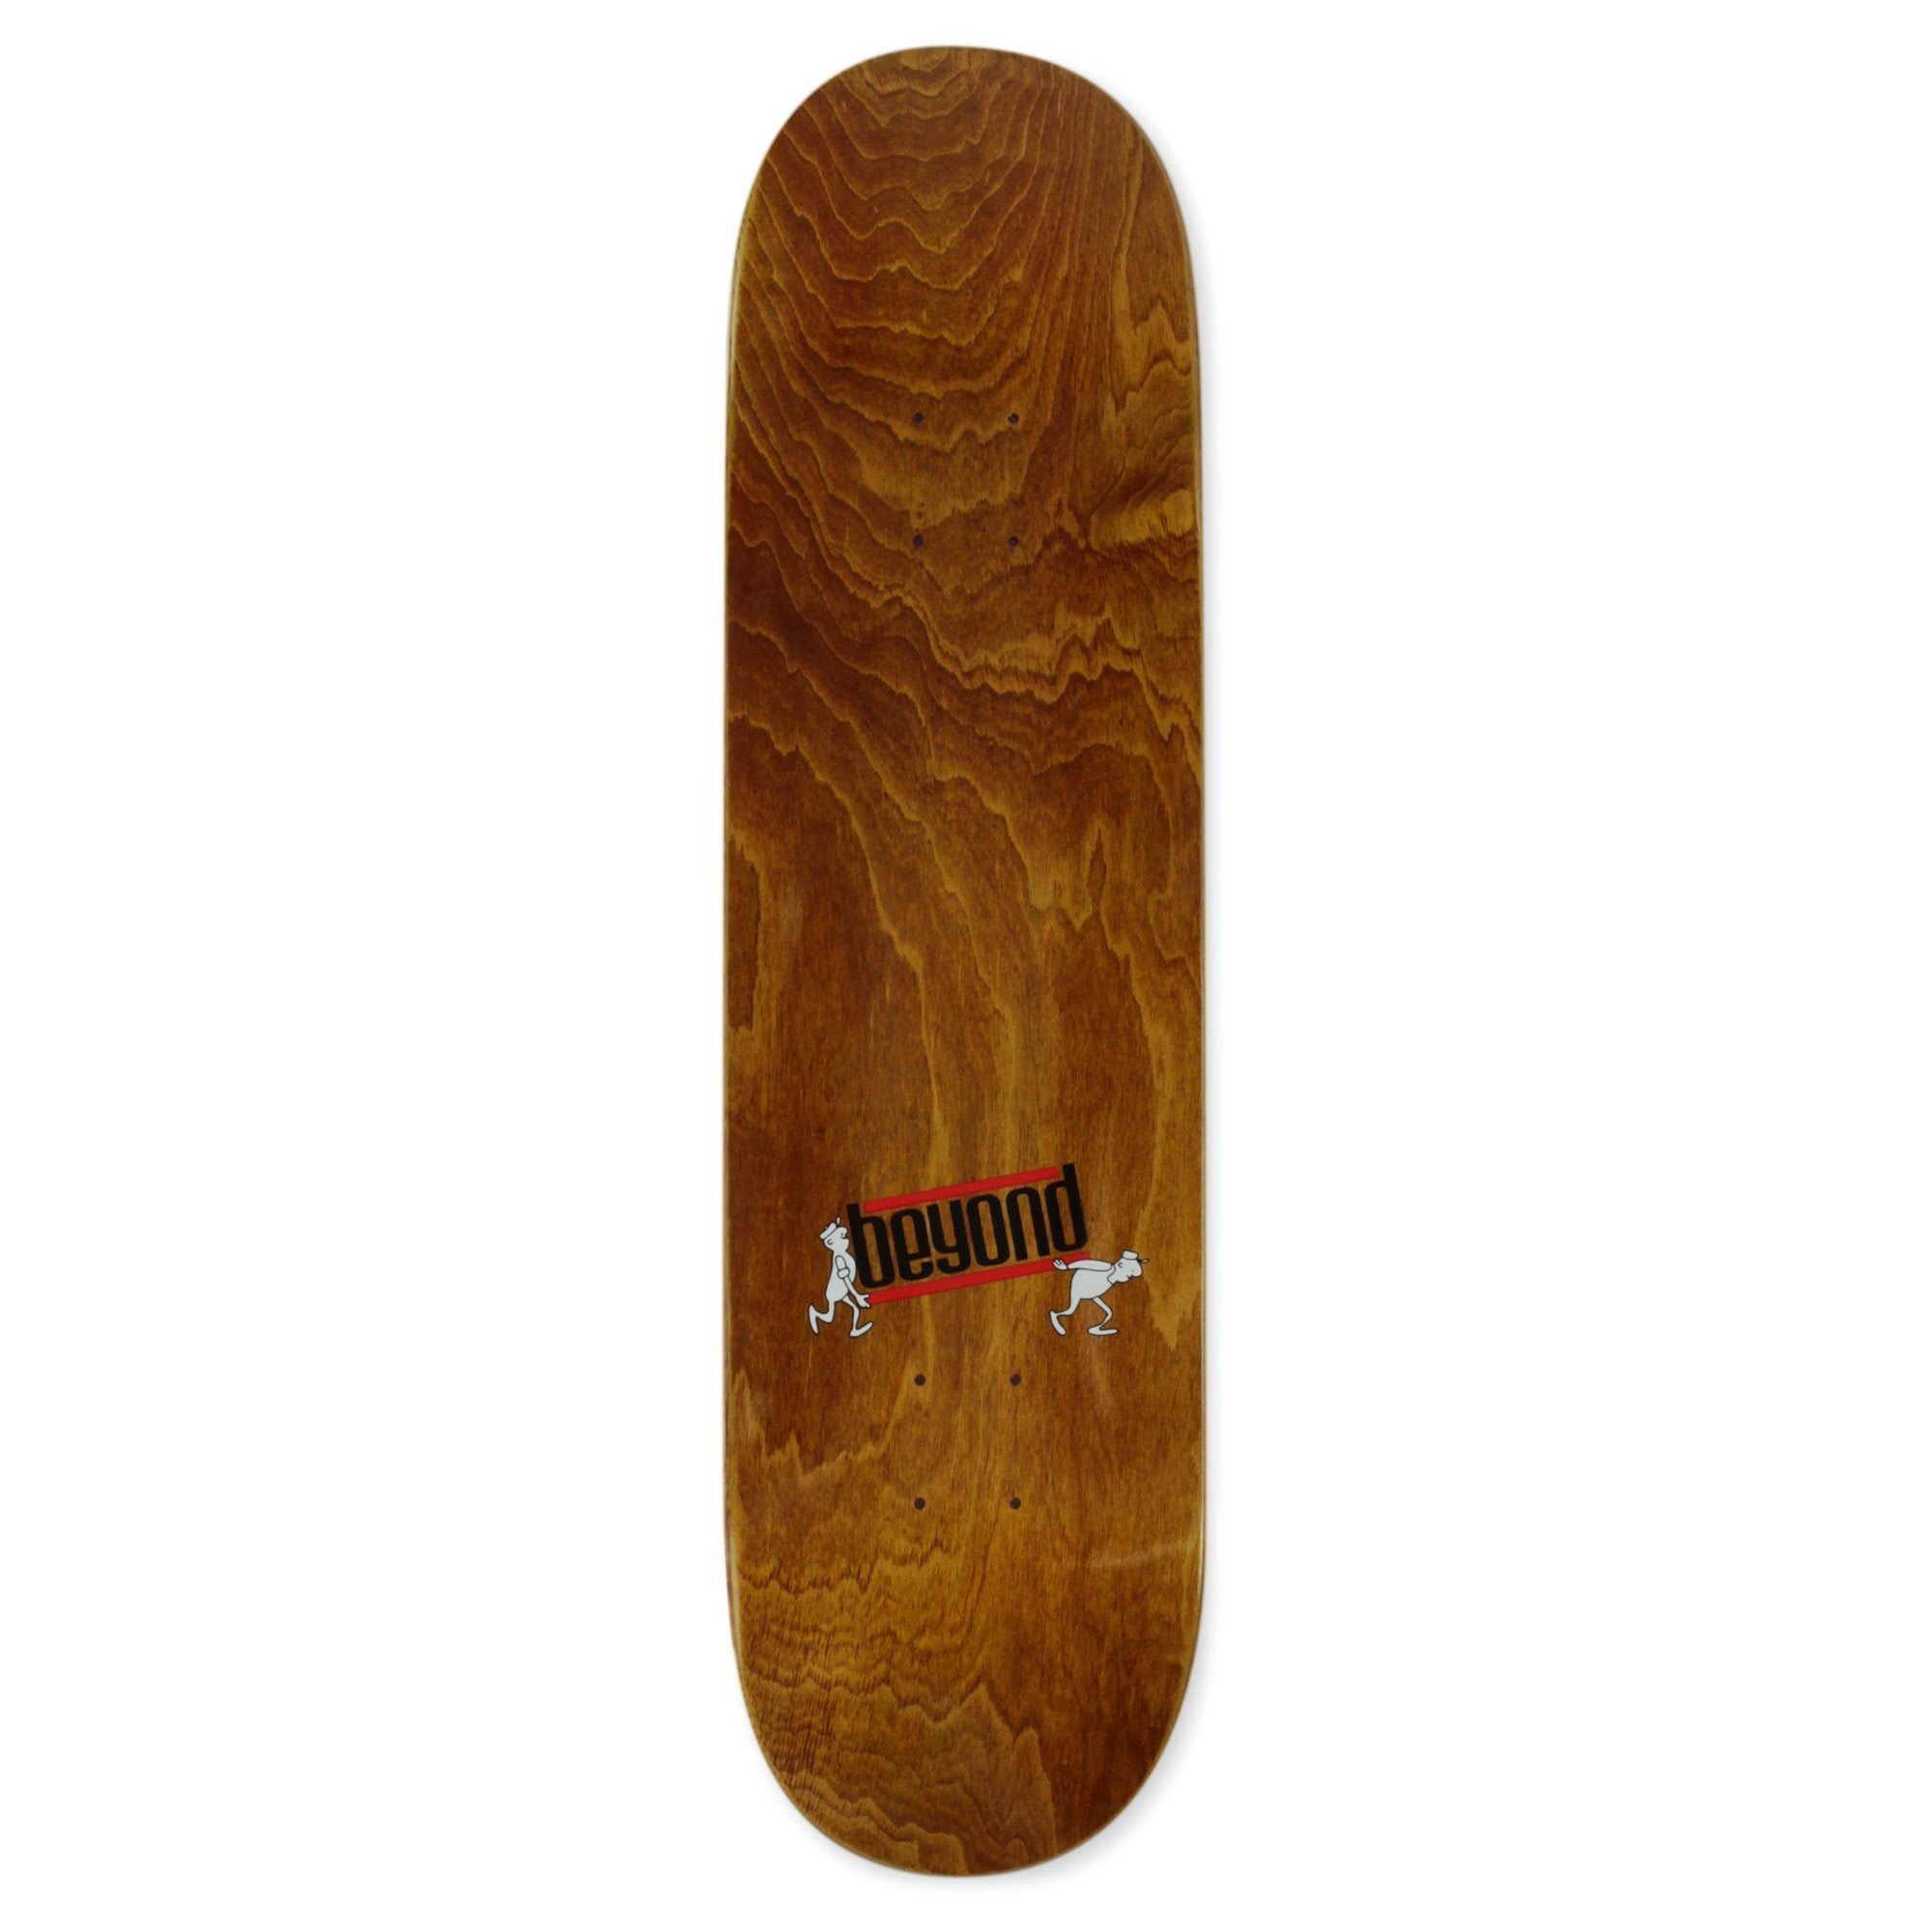 Beyond Moving Men Deck Product Photo #1